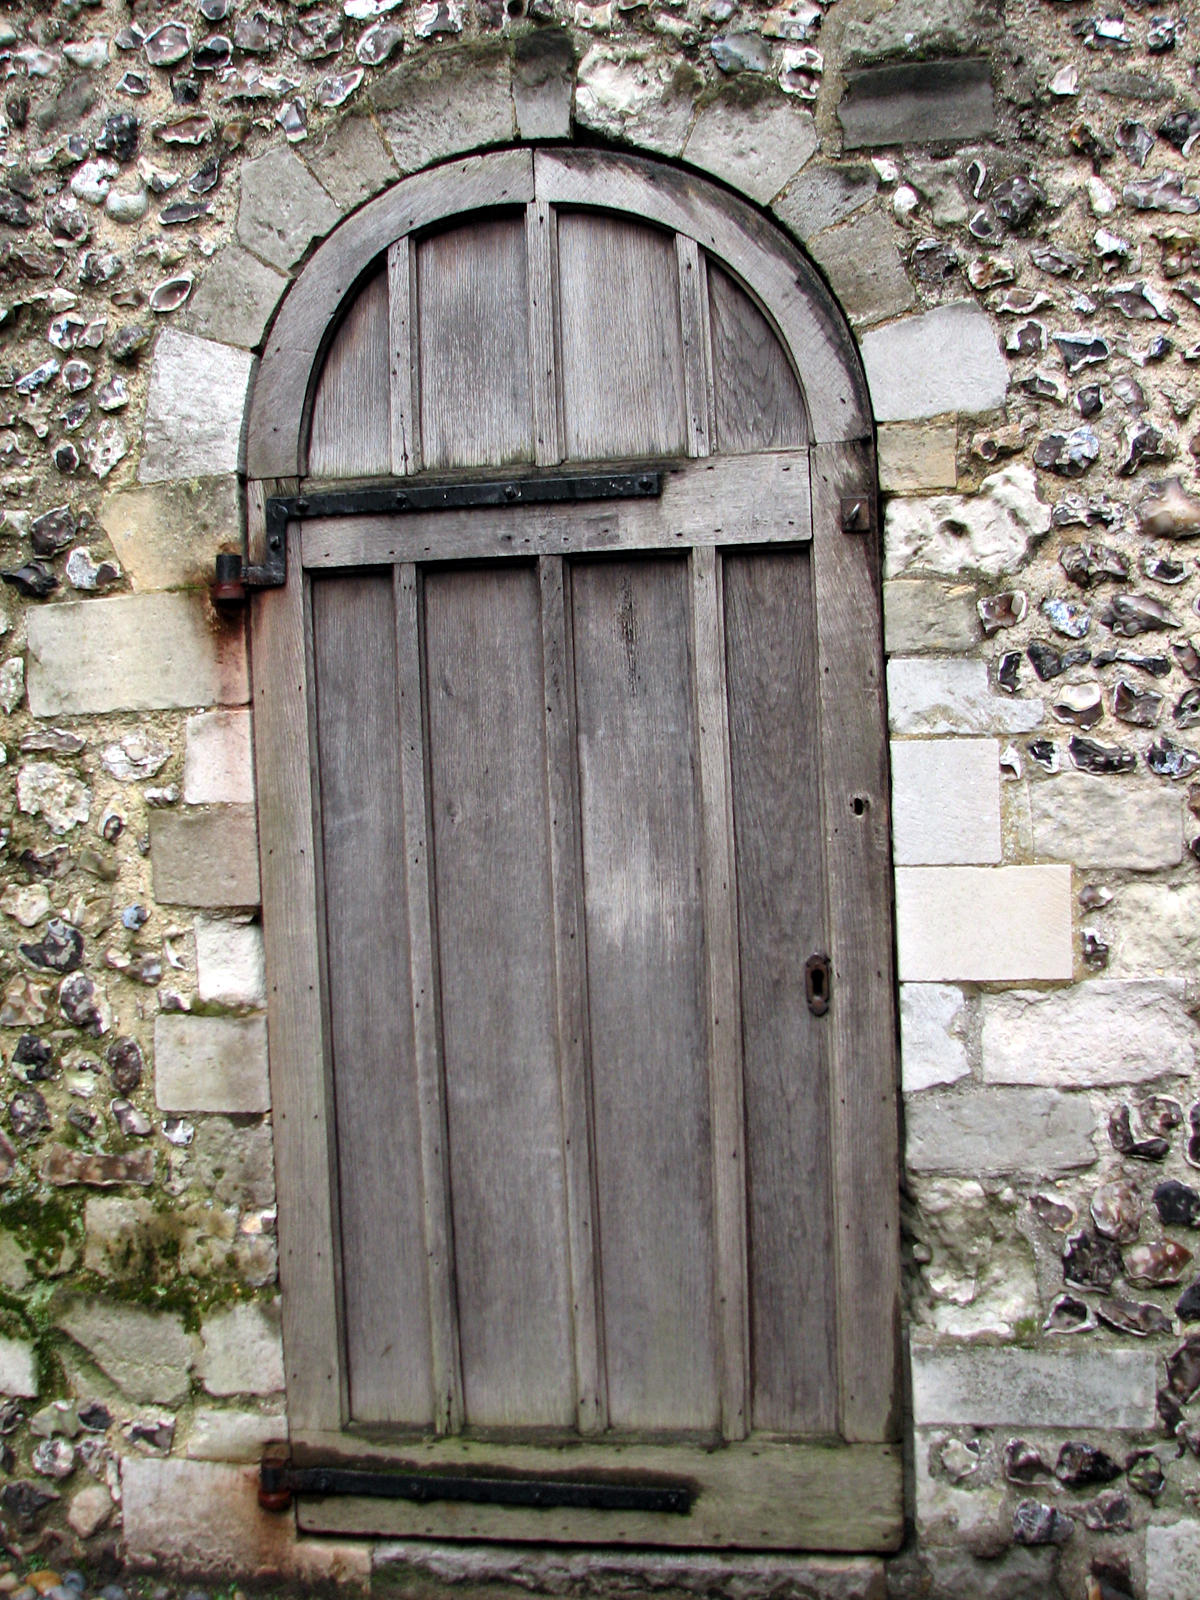 Doors wood doors 0152 01 preview jpg - Old Wooden Door By Thiselectricheart On Deviantart